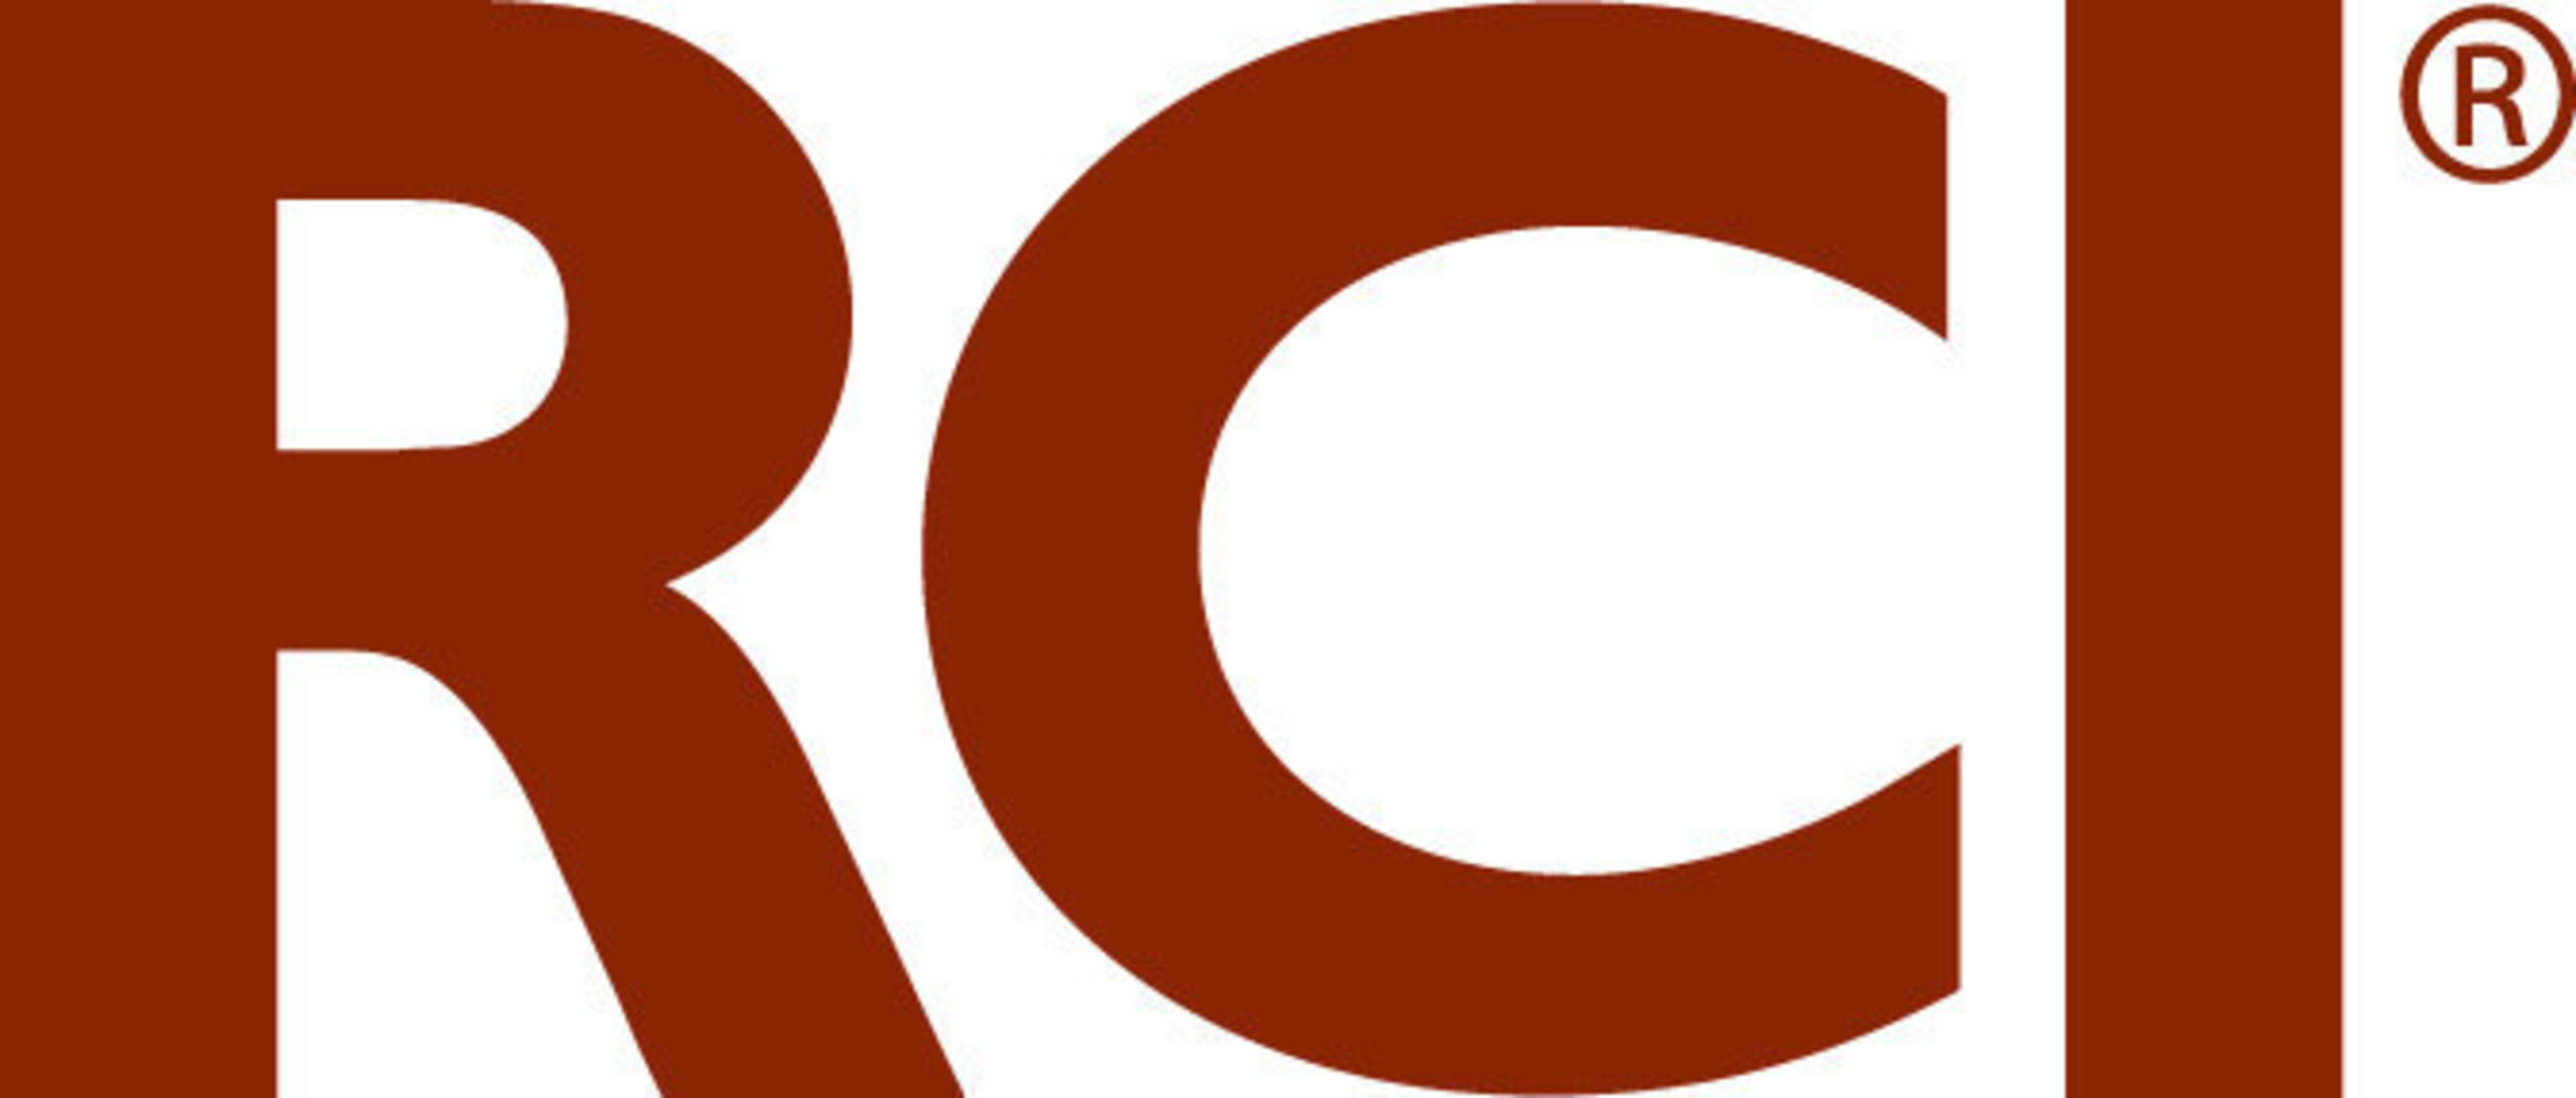 Grand Pacific Resorts and RCI Renew Affiliation